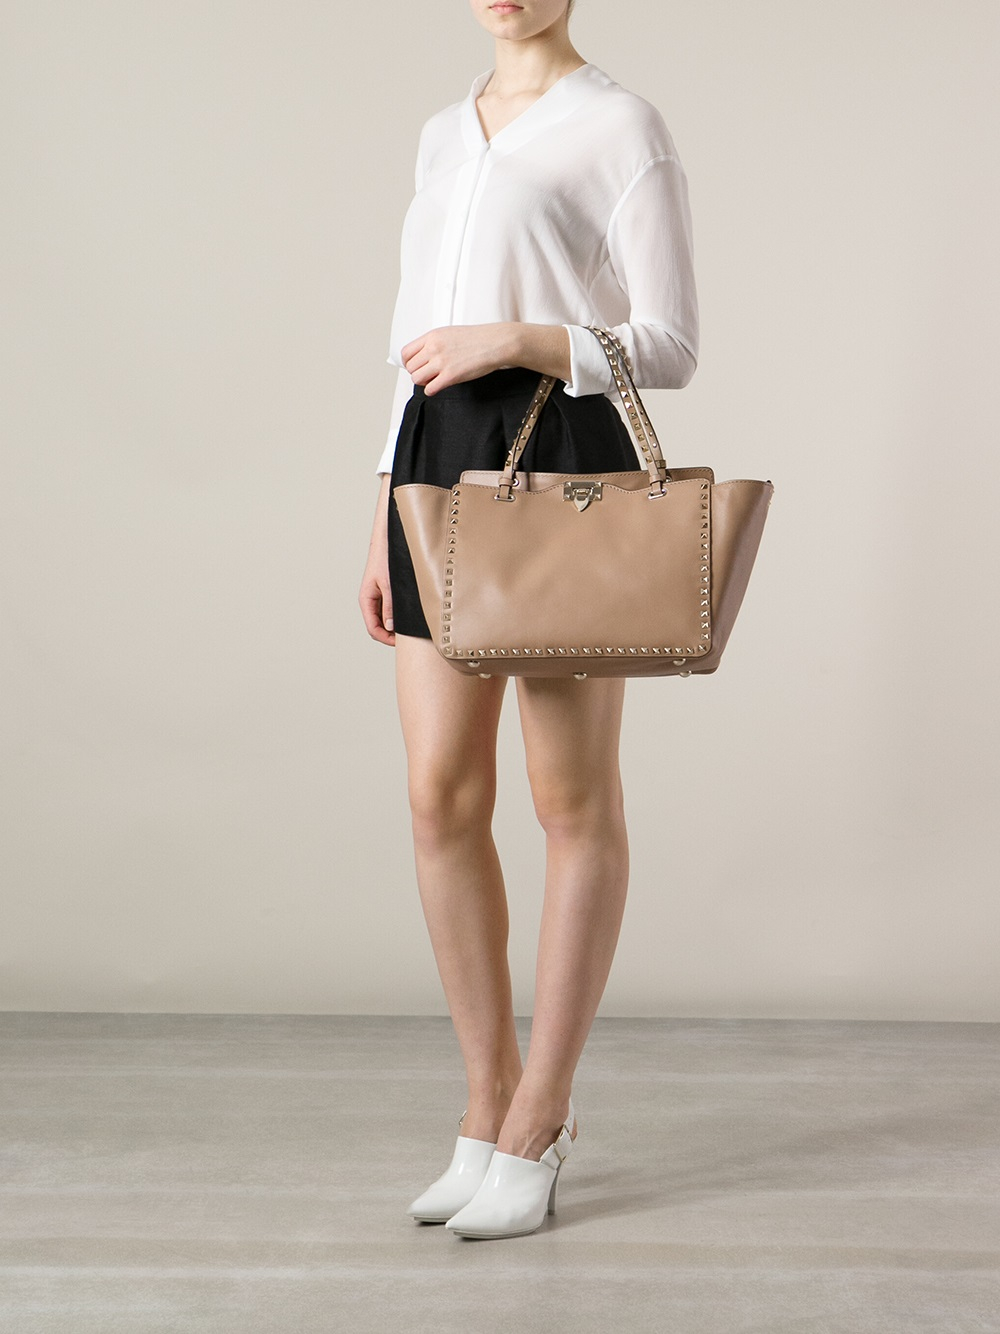 a59f8829a5 $2800 Valentino Nude Beige Leather Rockstud Trapeze Large Tote Bag ...